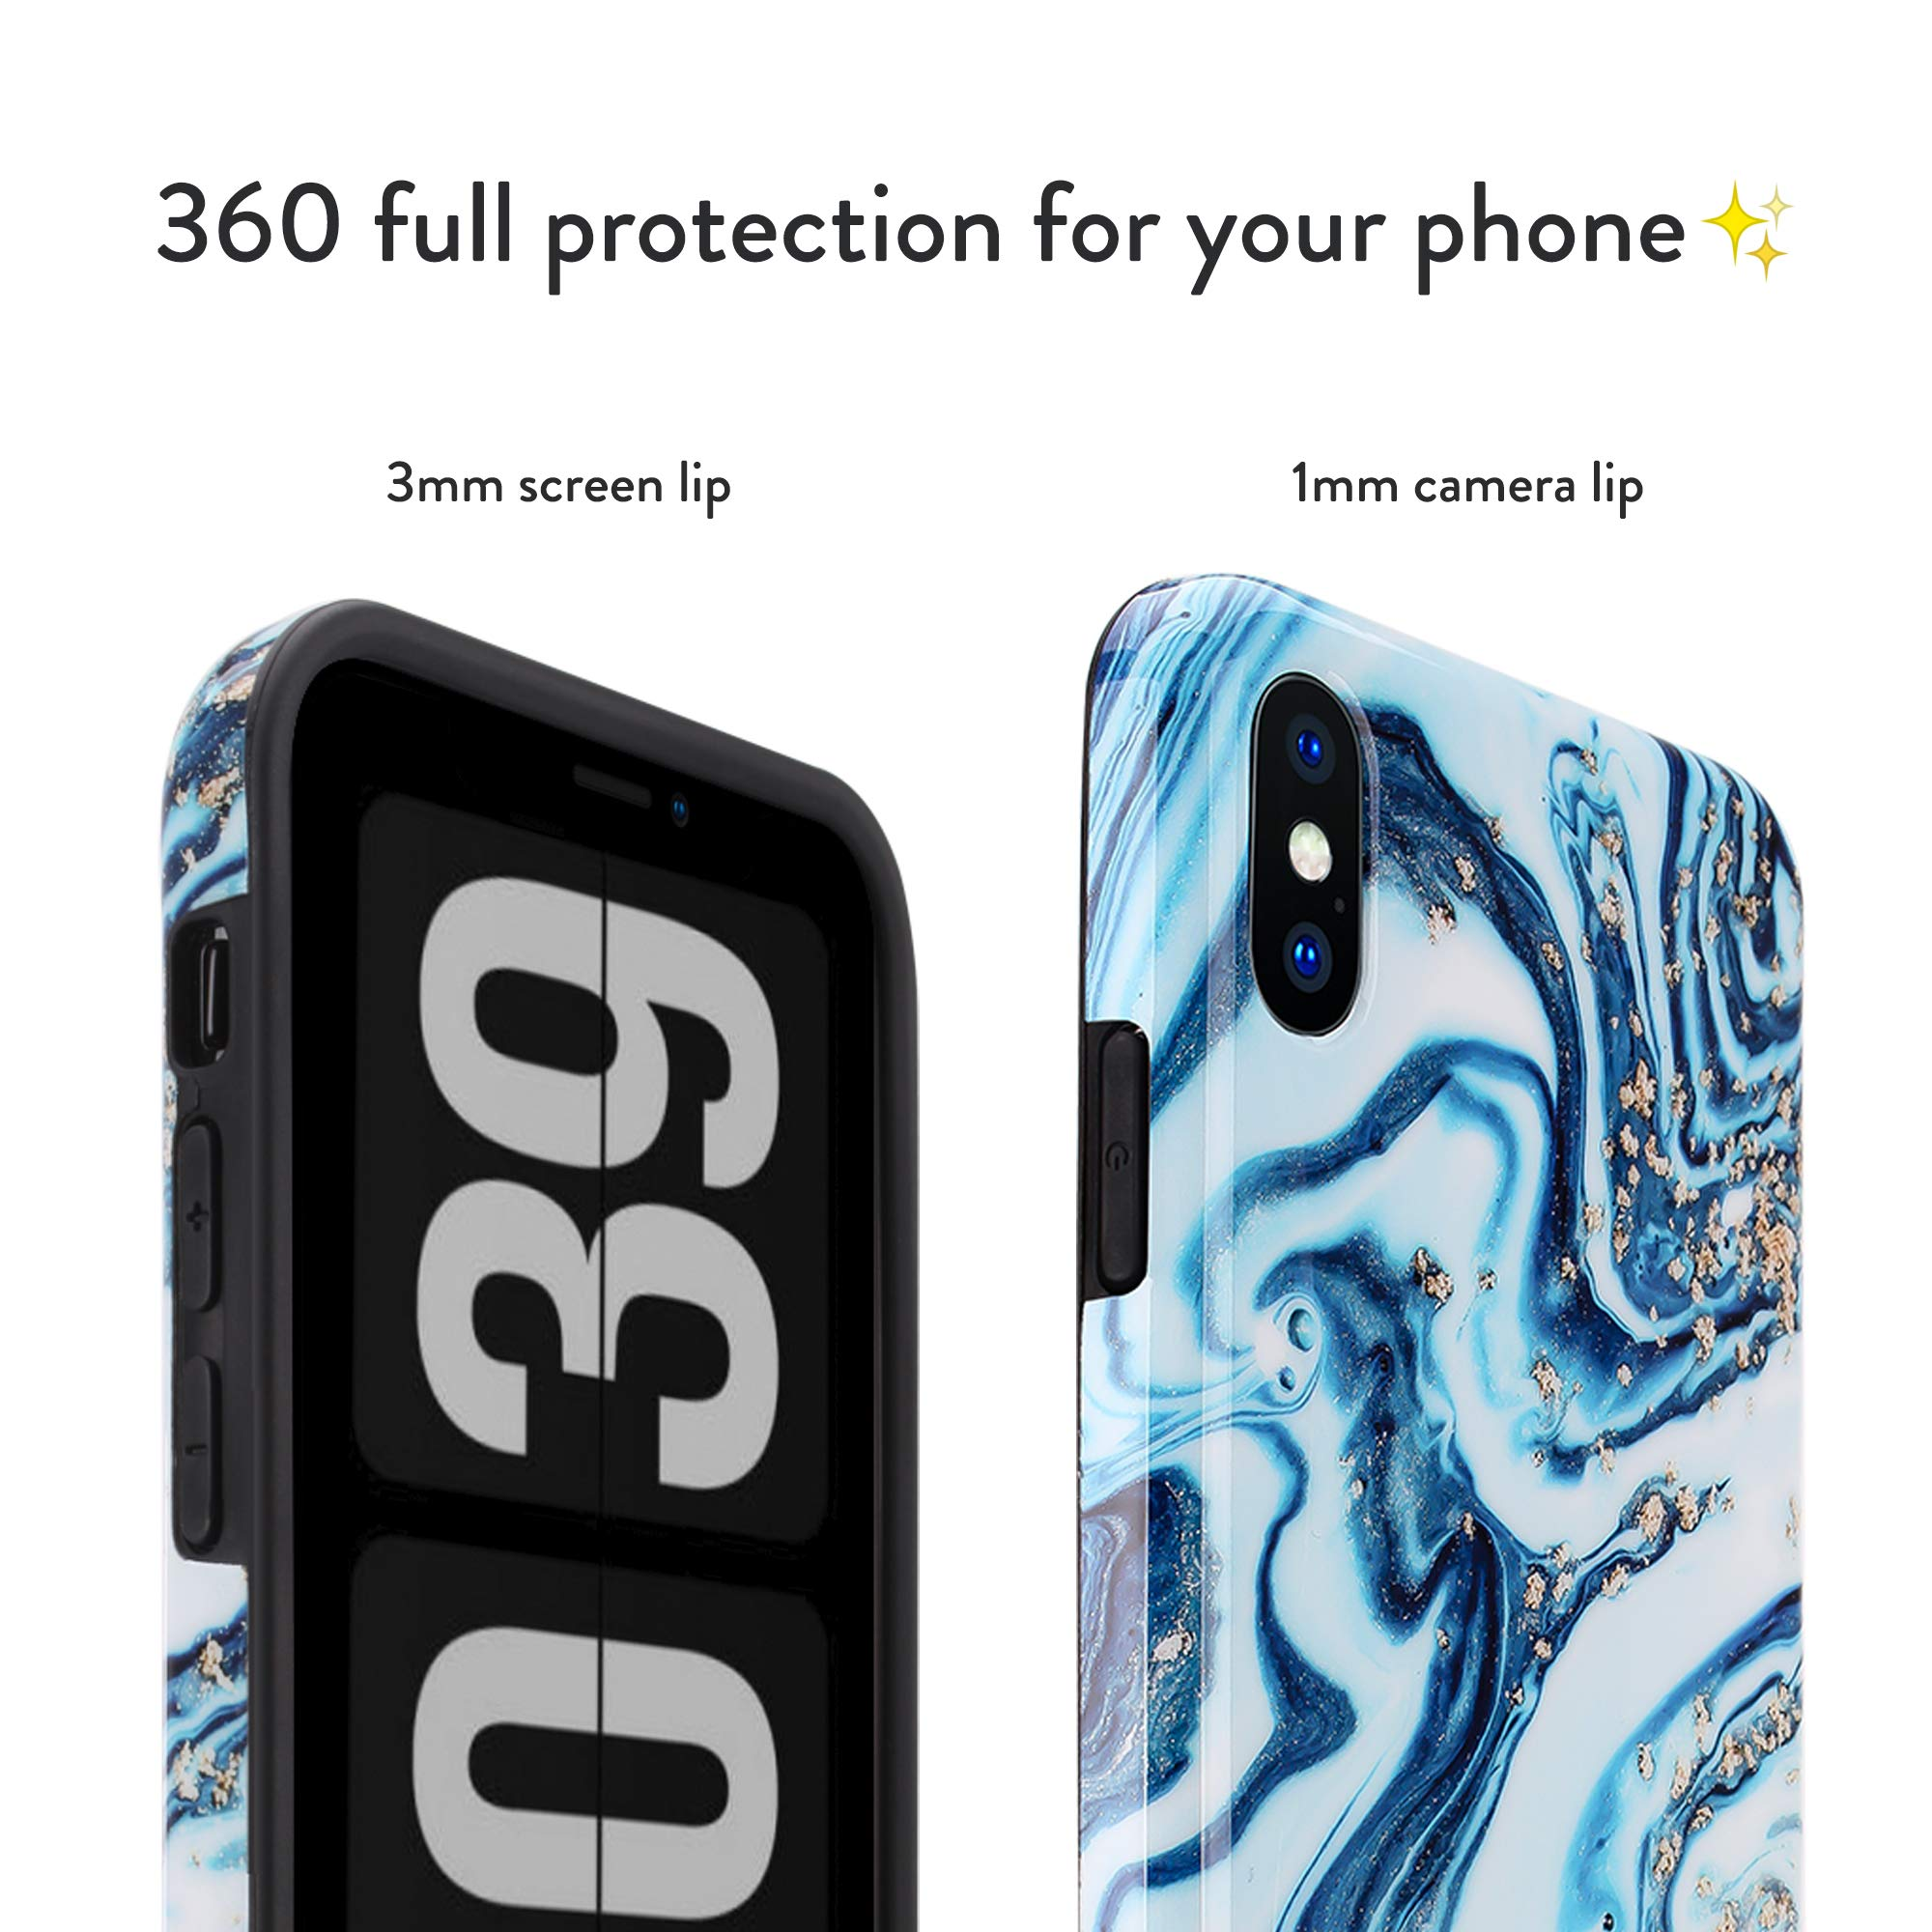 honua. iPhone Xs Max Marble Case, Cute and Protective Shockproof Design Full Body Case for iPhone Xs Max - Glossy Gold Ocean